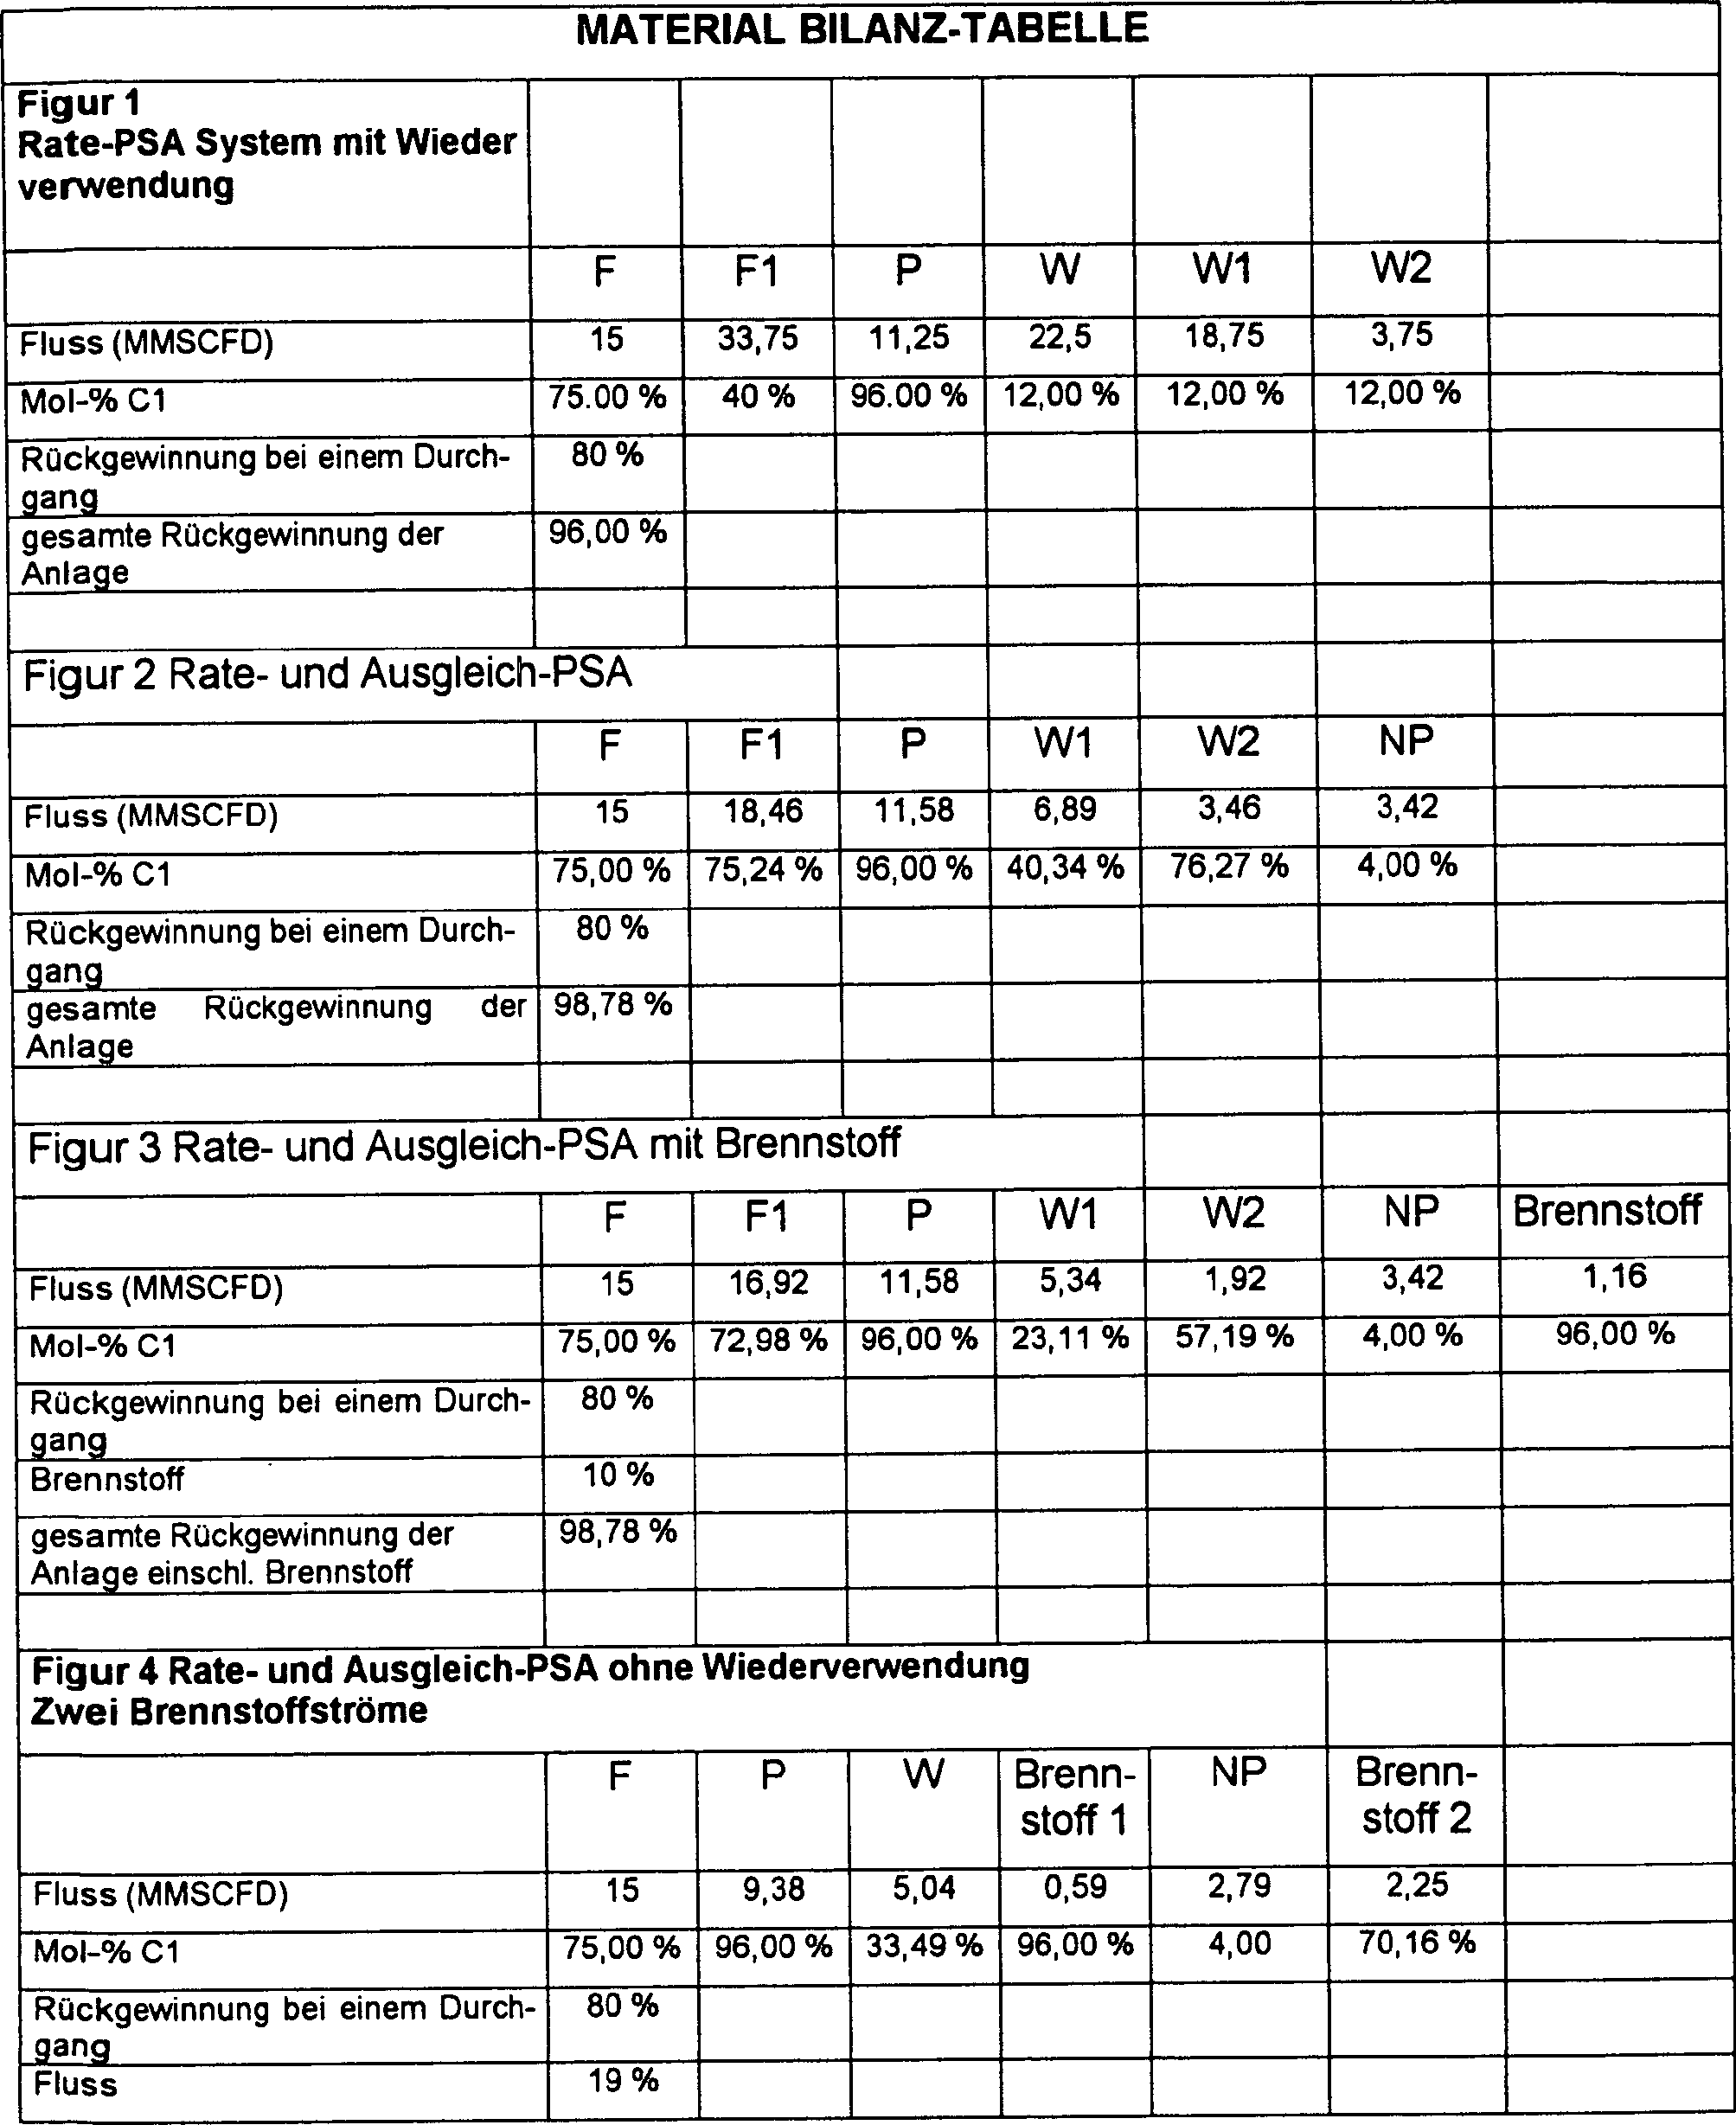 DE60020346T2 - Selective removal of nitrogen from natural